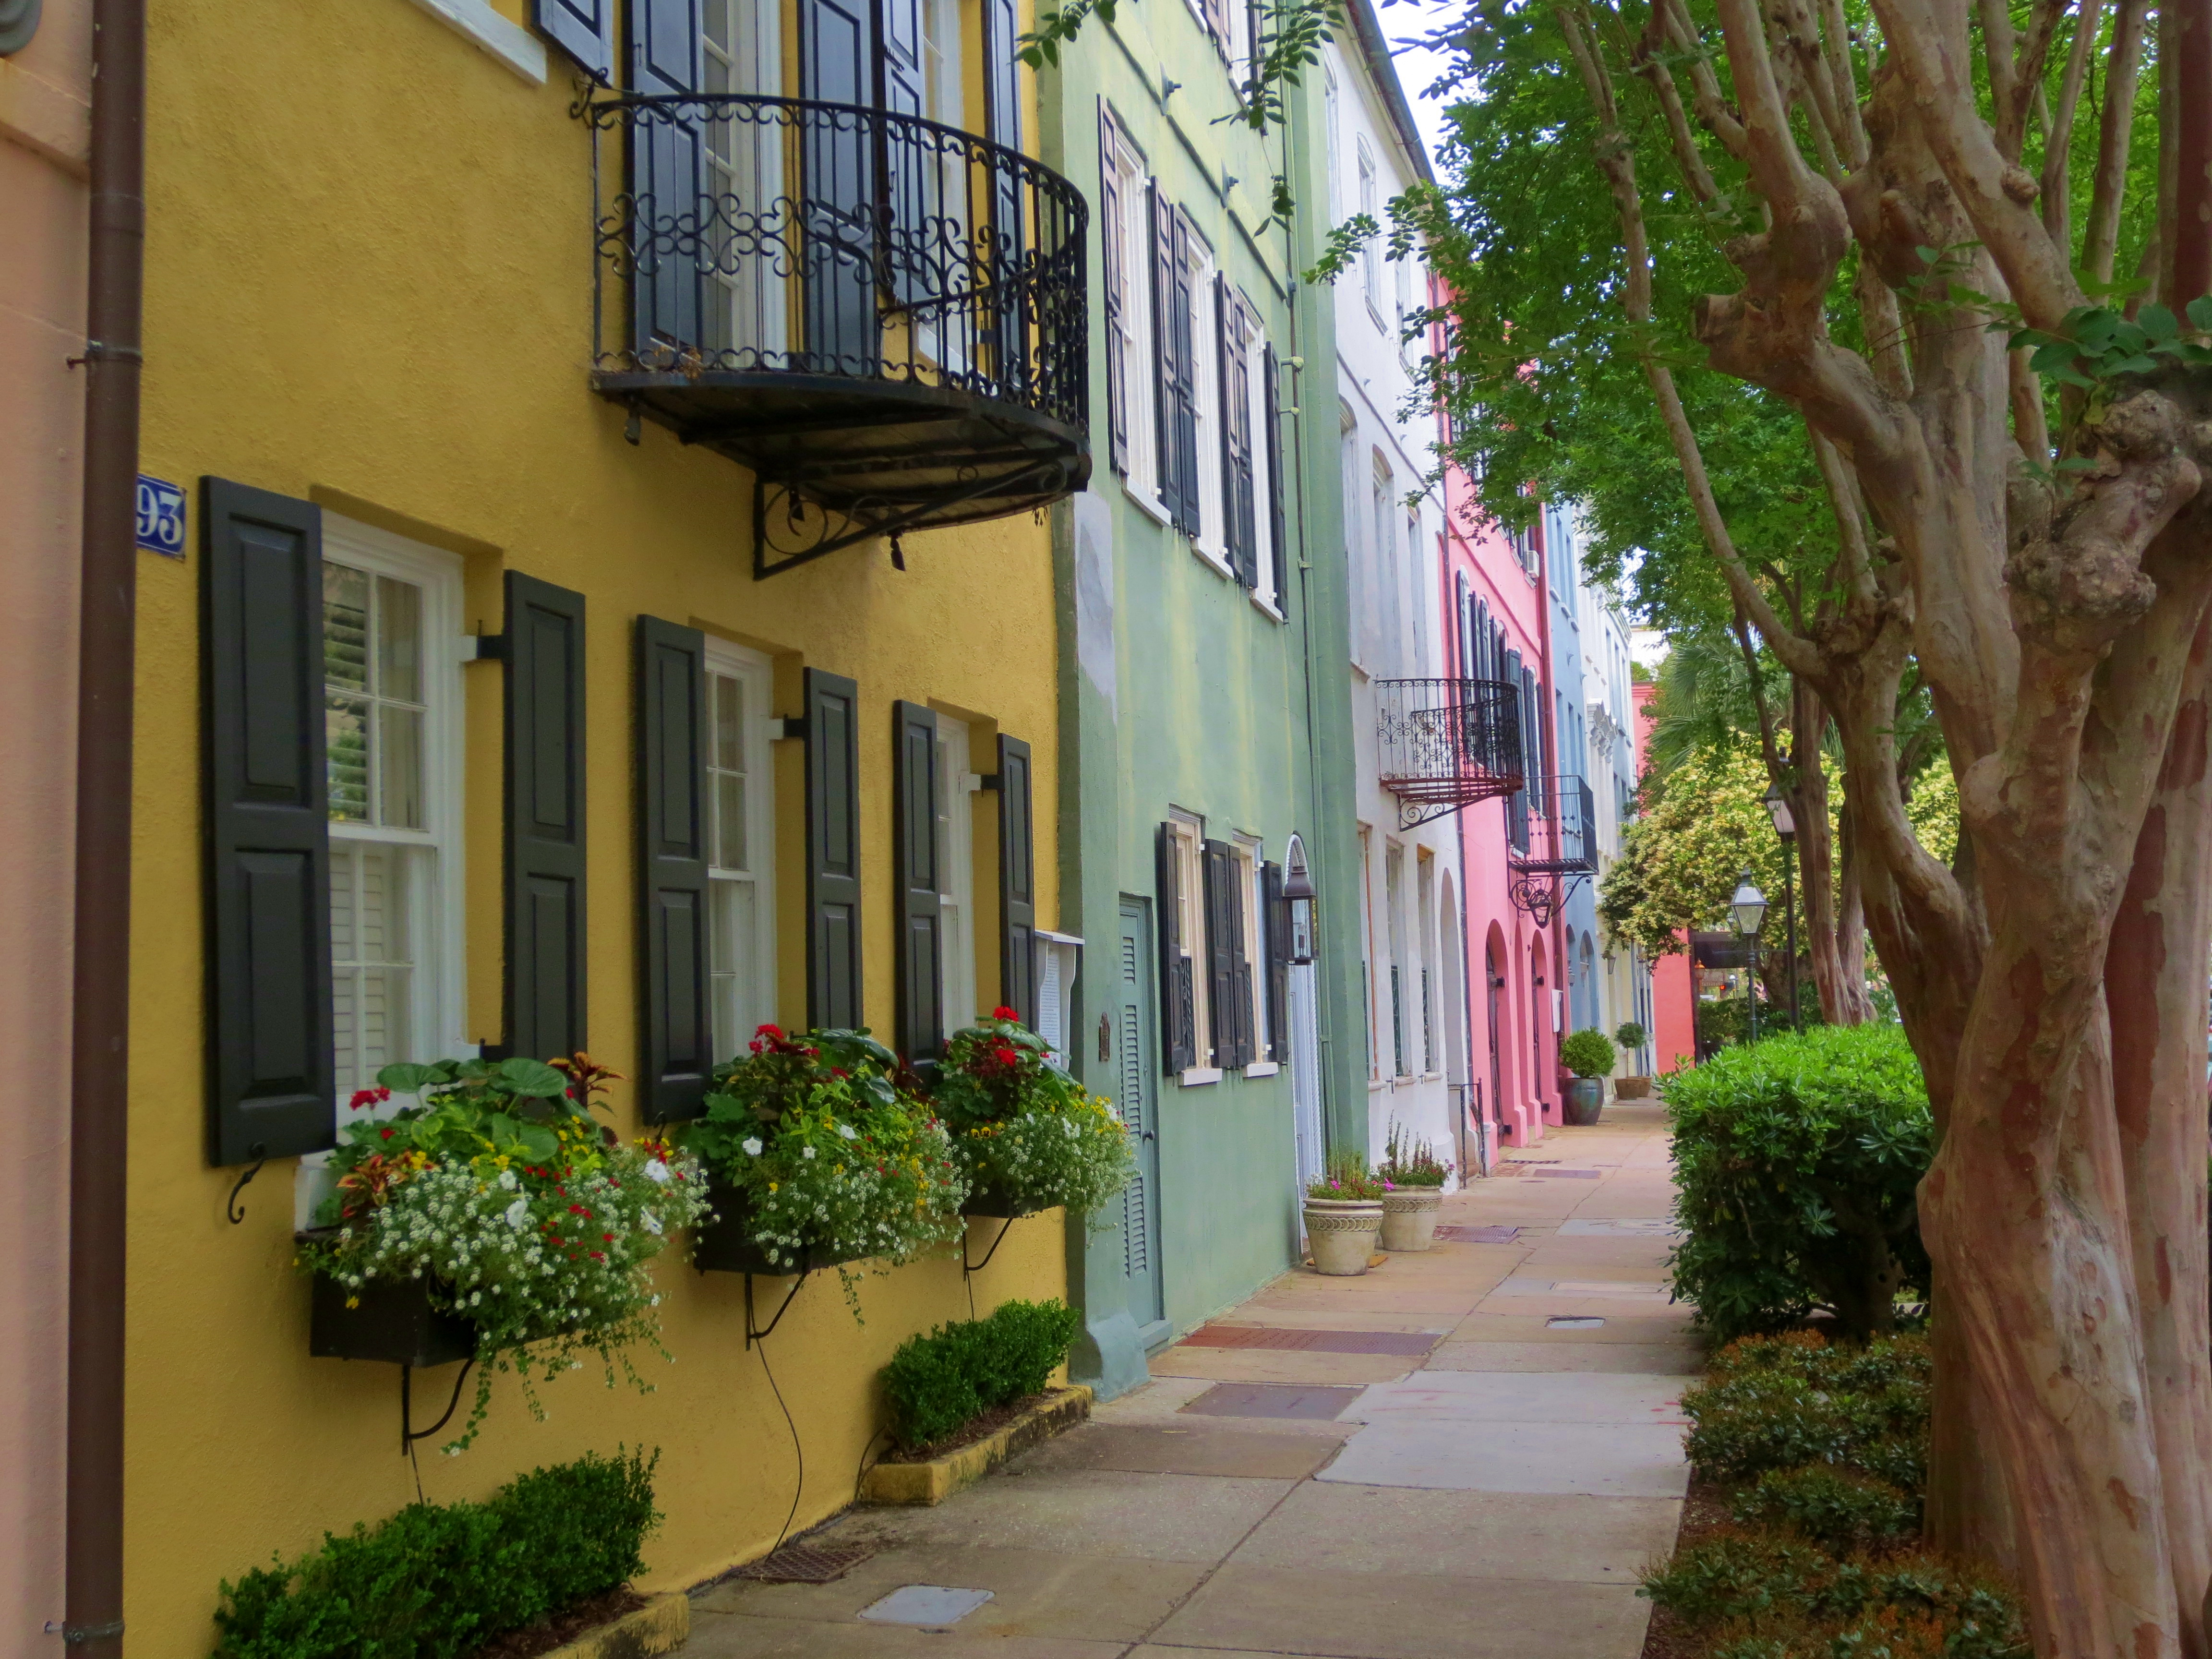 Charleston south carolina travel blog 1 farfalla for How do i get to charleston south carolina